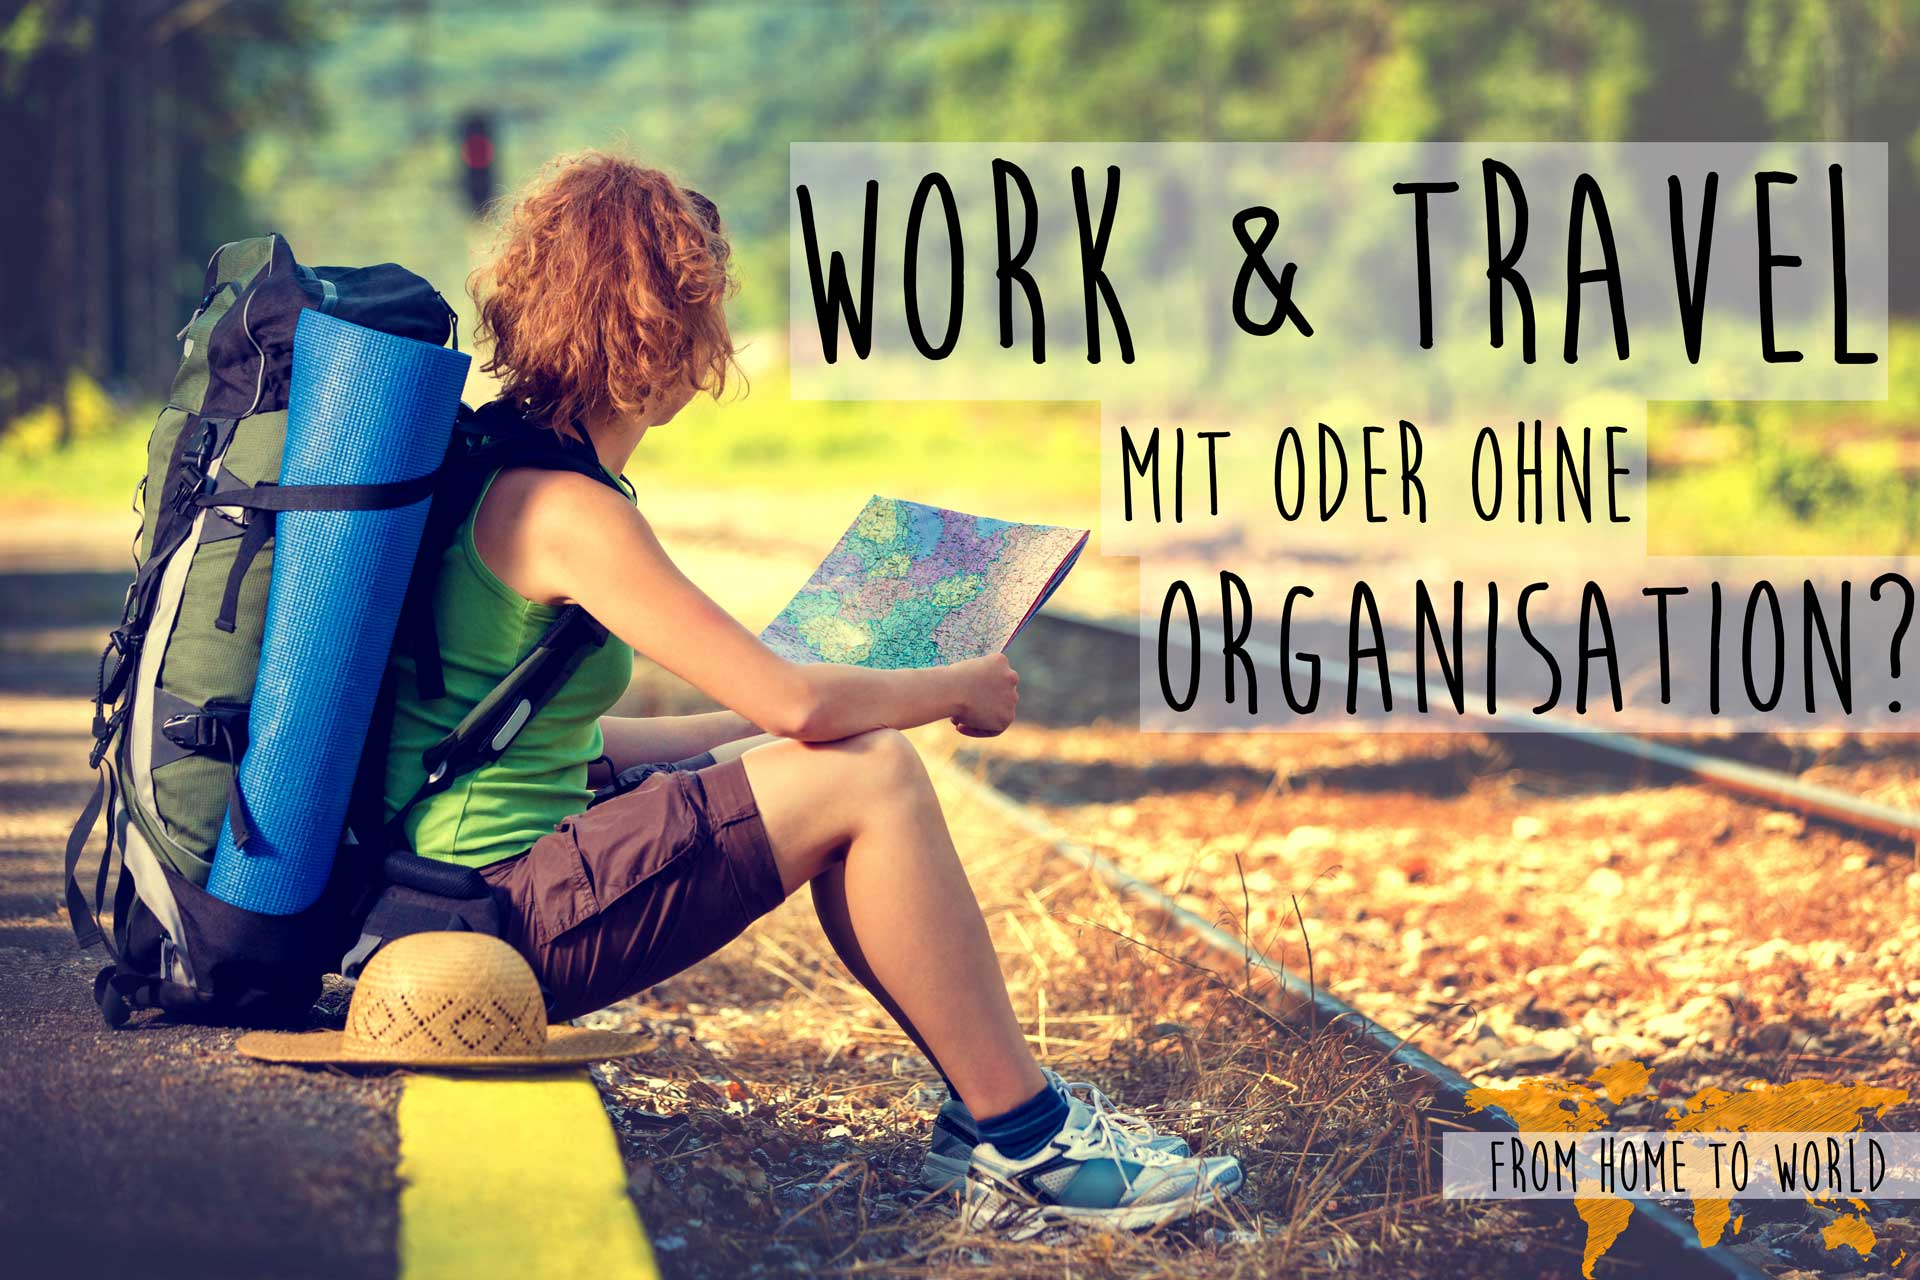 work-and-travel-mit-oder-ohne-organisation-from-home-to-world-reiseblog